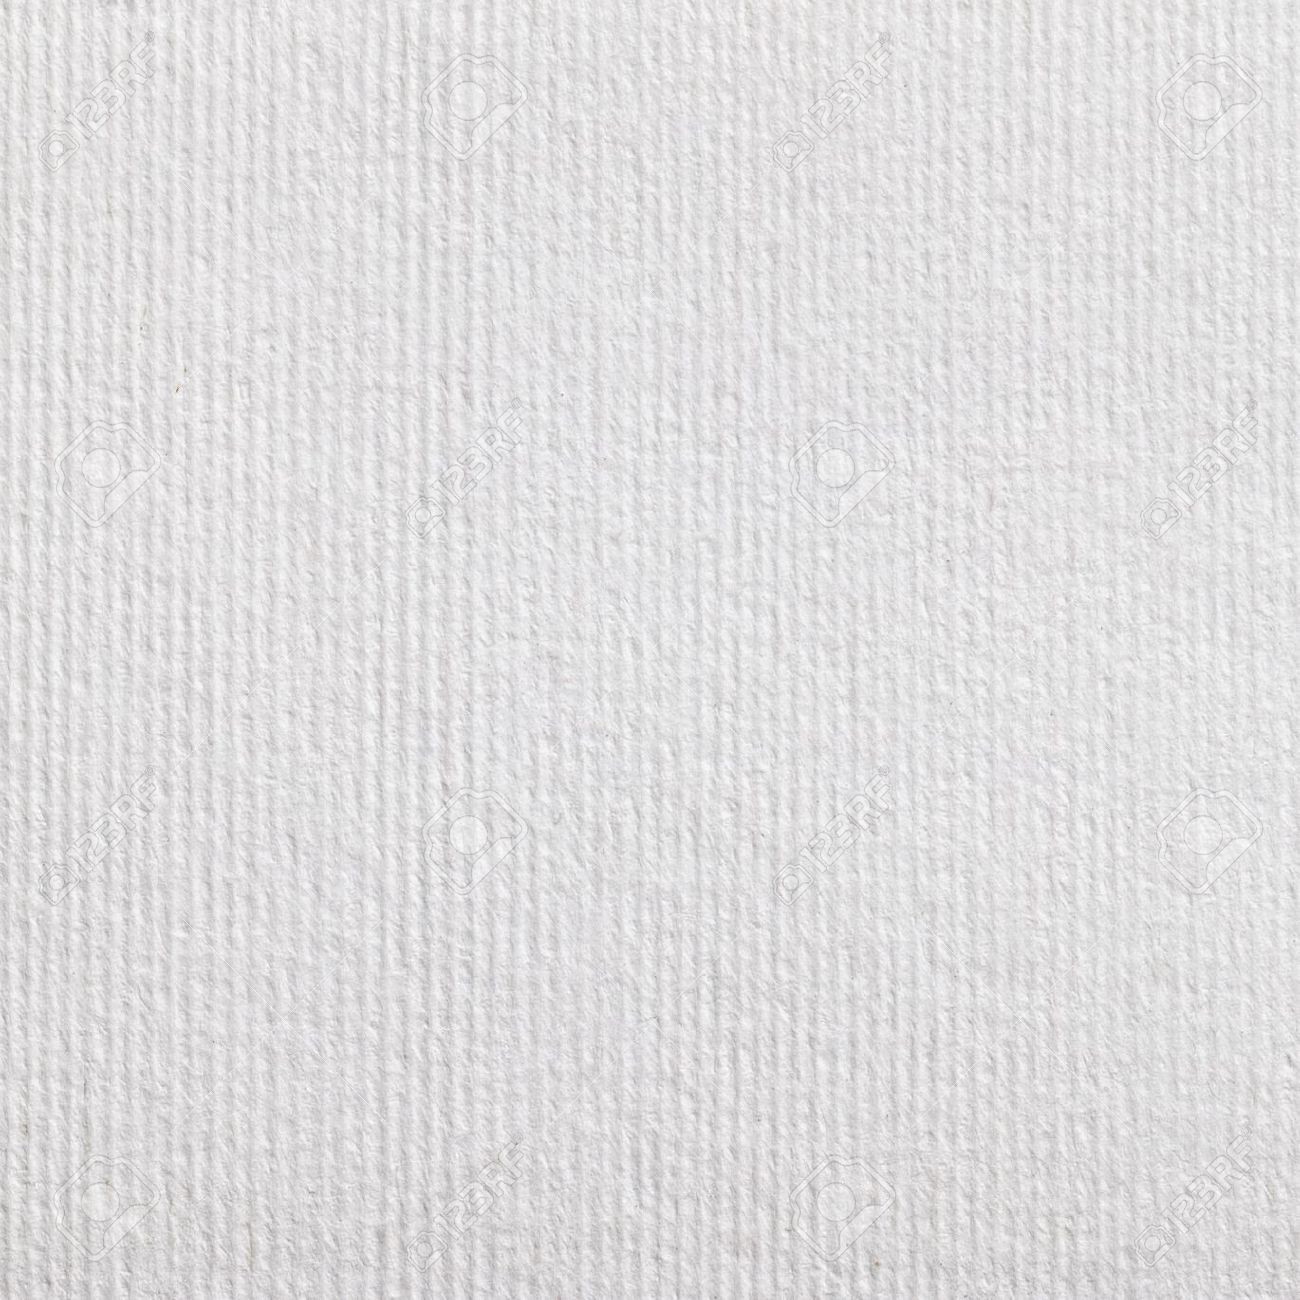 art paper textured background stock photo picture and royalty free